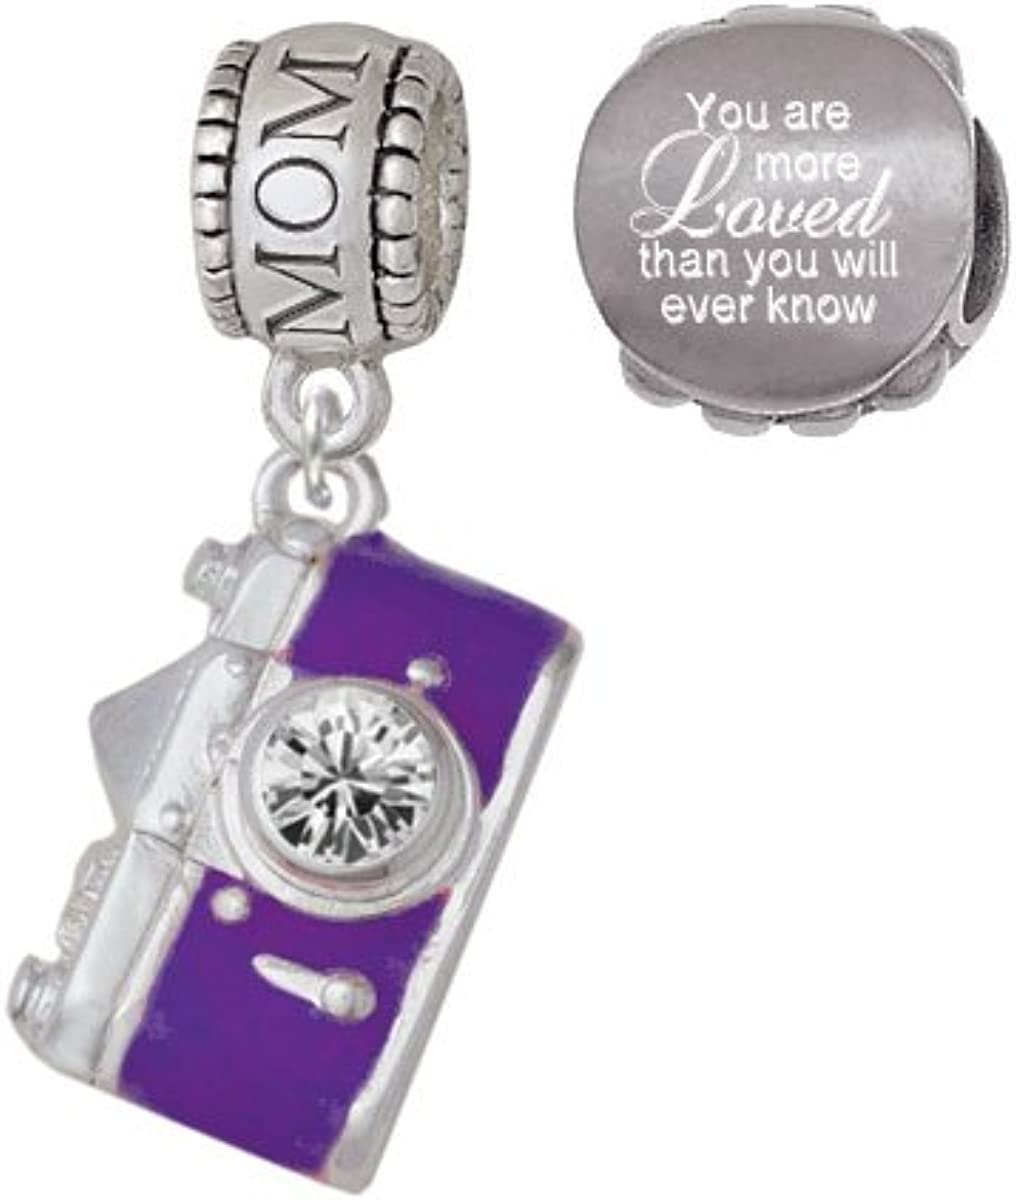 Set of 2 Delight Jewelry Purple Camera Family Charm Bead with You Are More Loved Bead